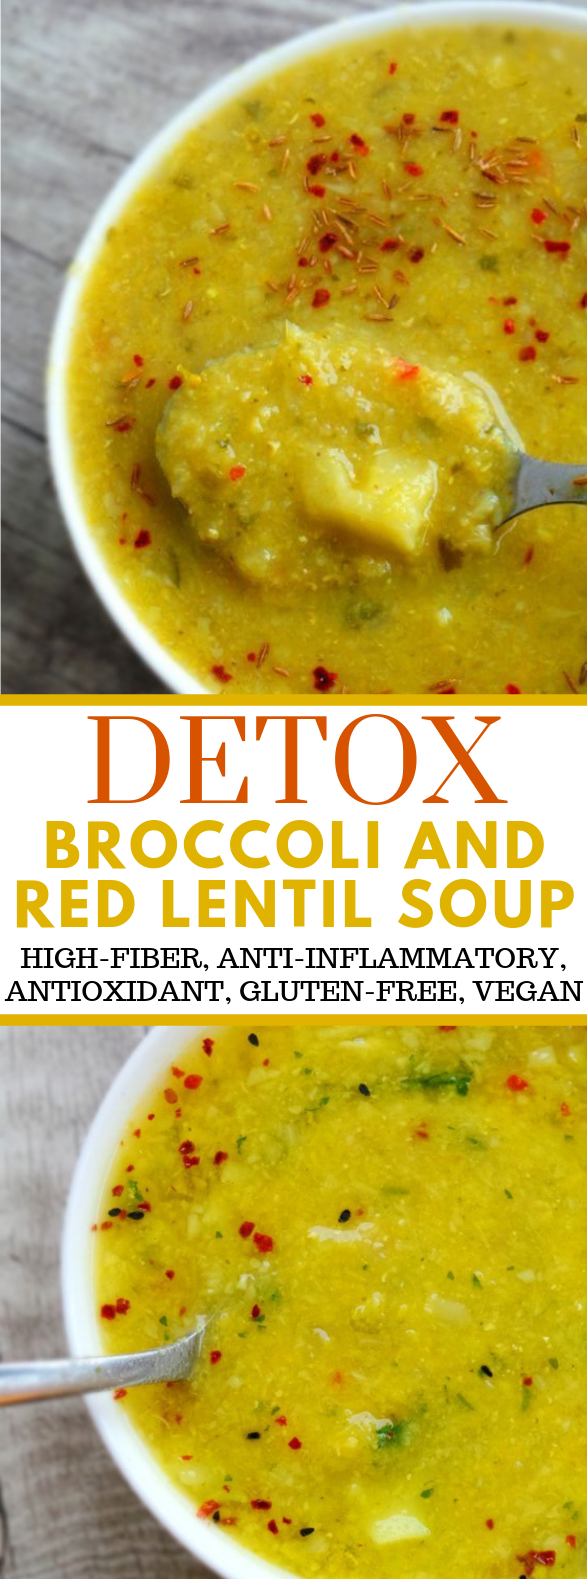 BROCCOLI AND RED LENTIL DETOX SOUP #diet #weightloss